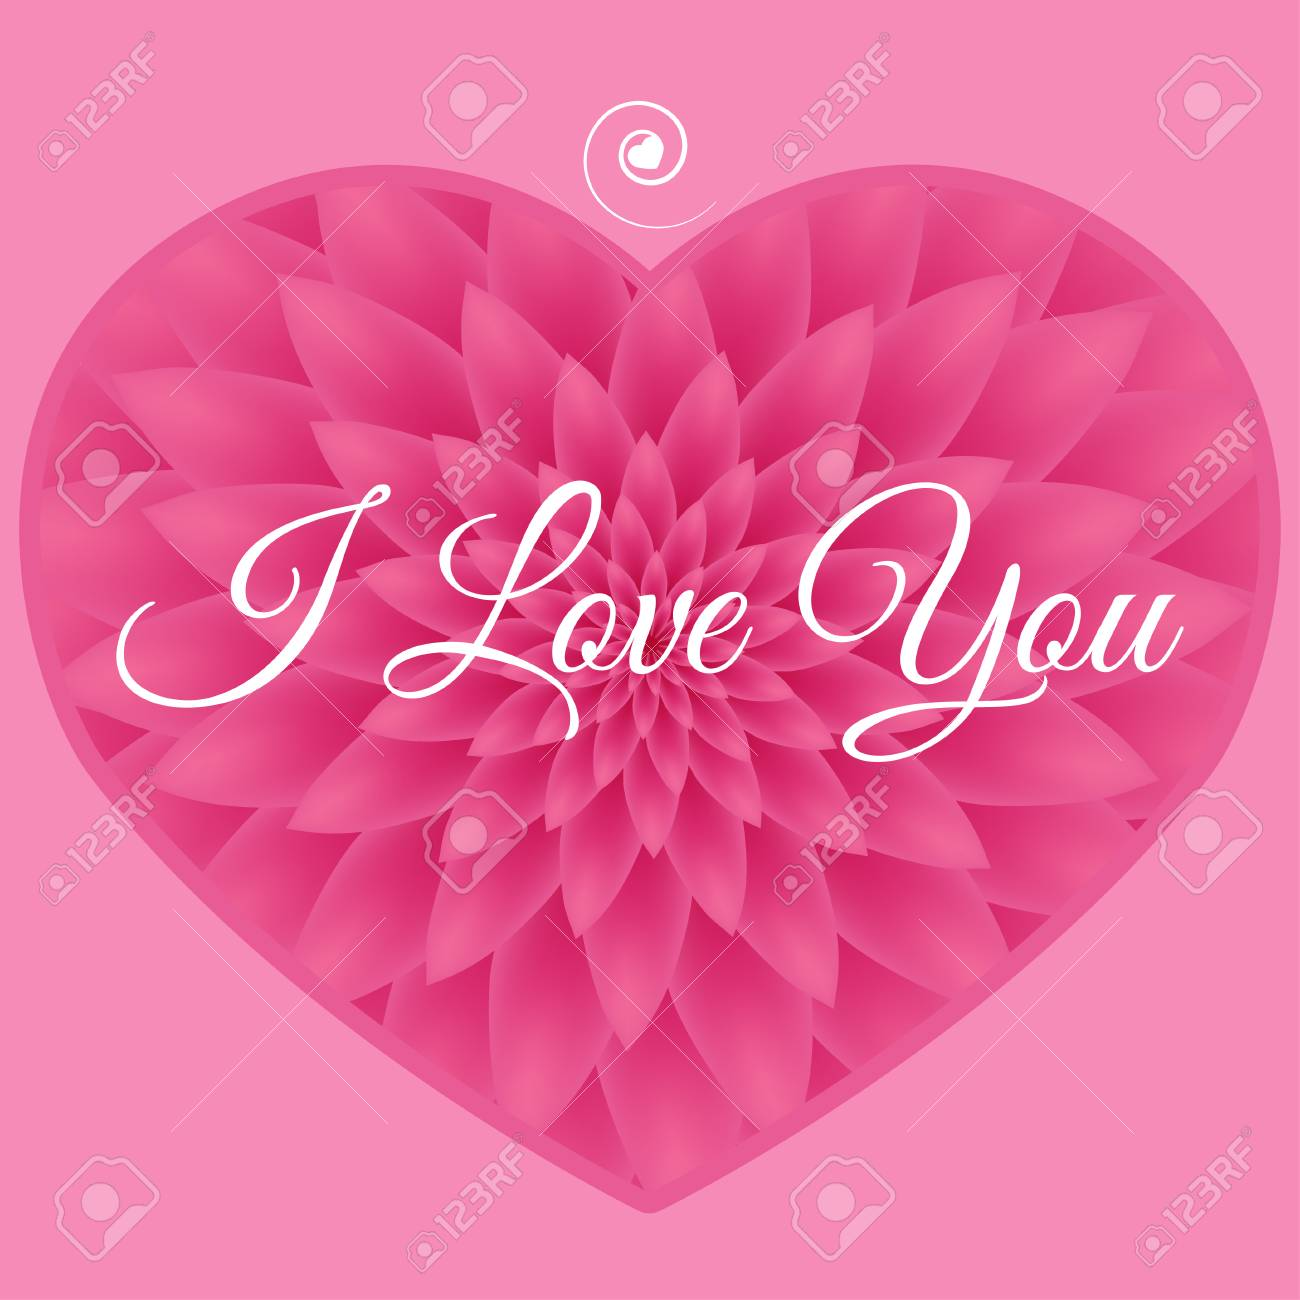 I Love You Card Greeting Card With Pink Chrysanthemum In The